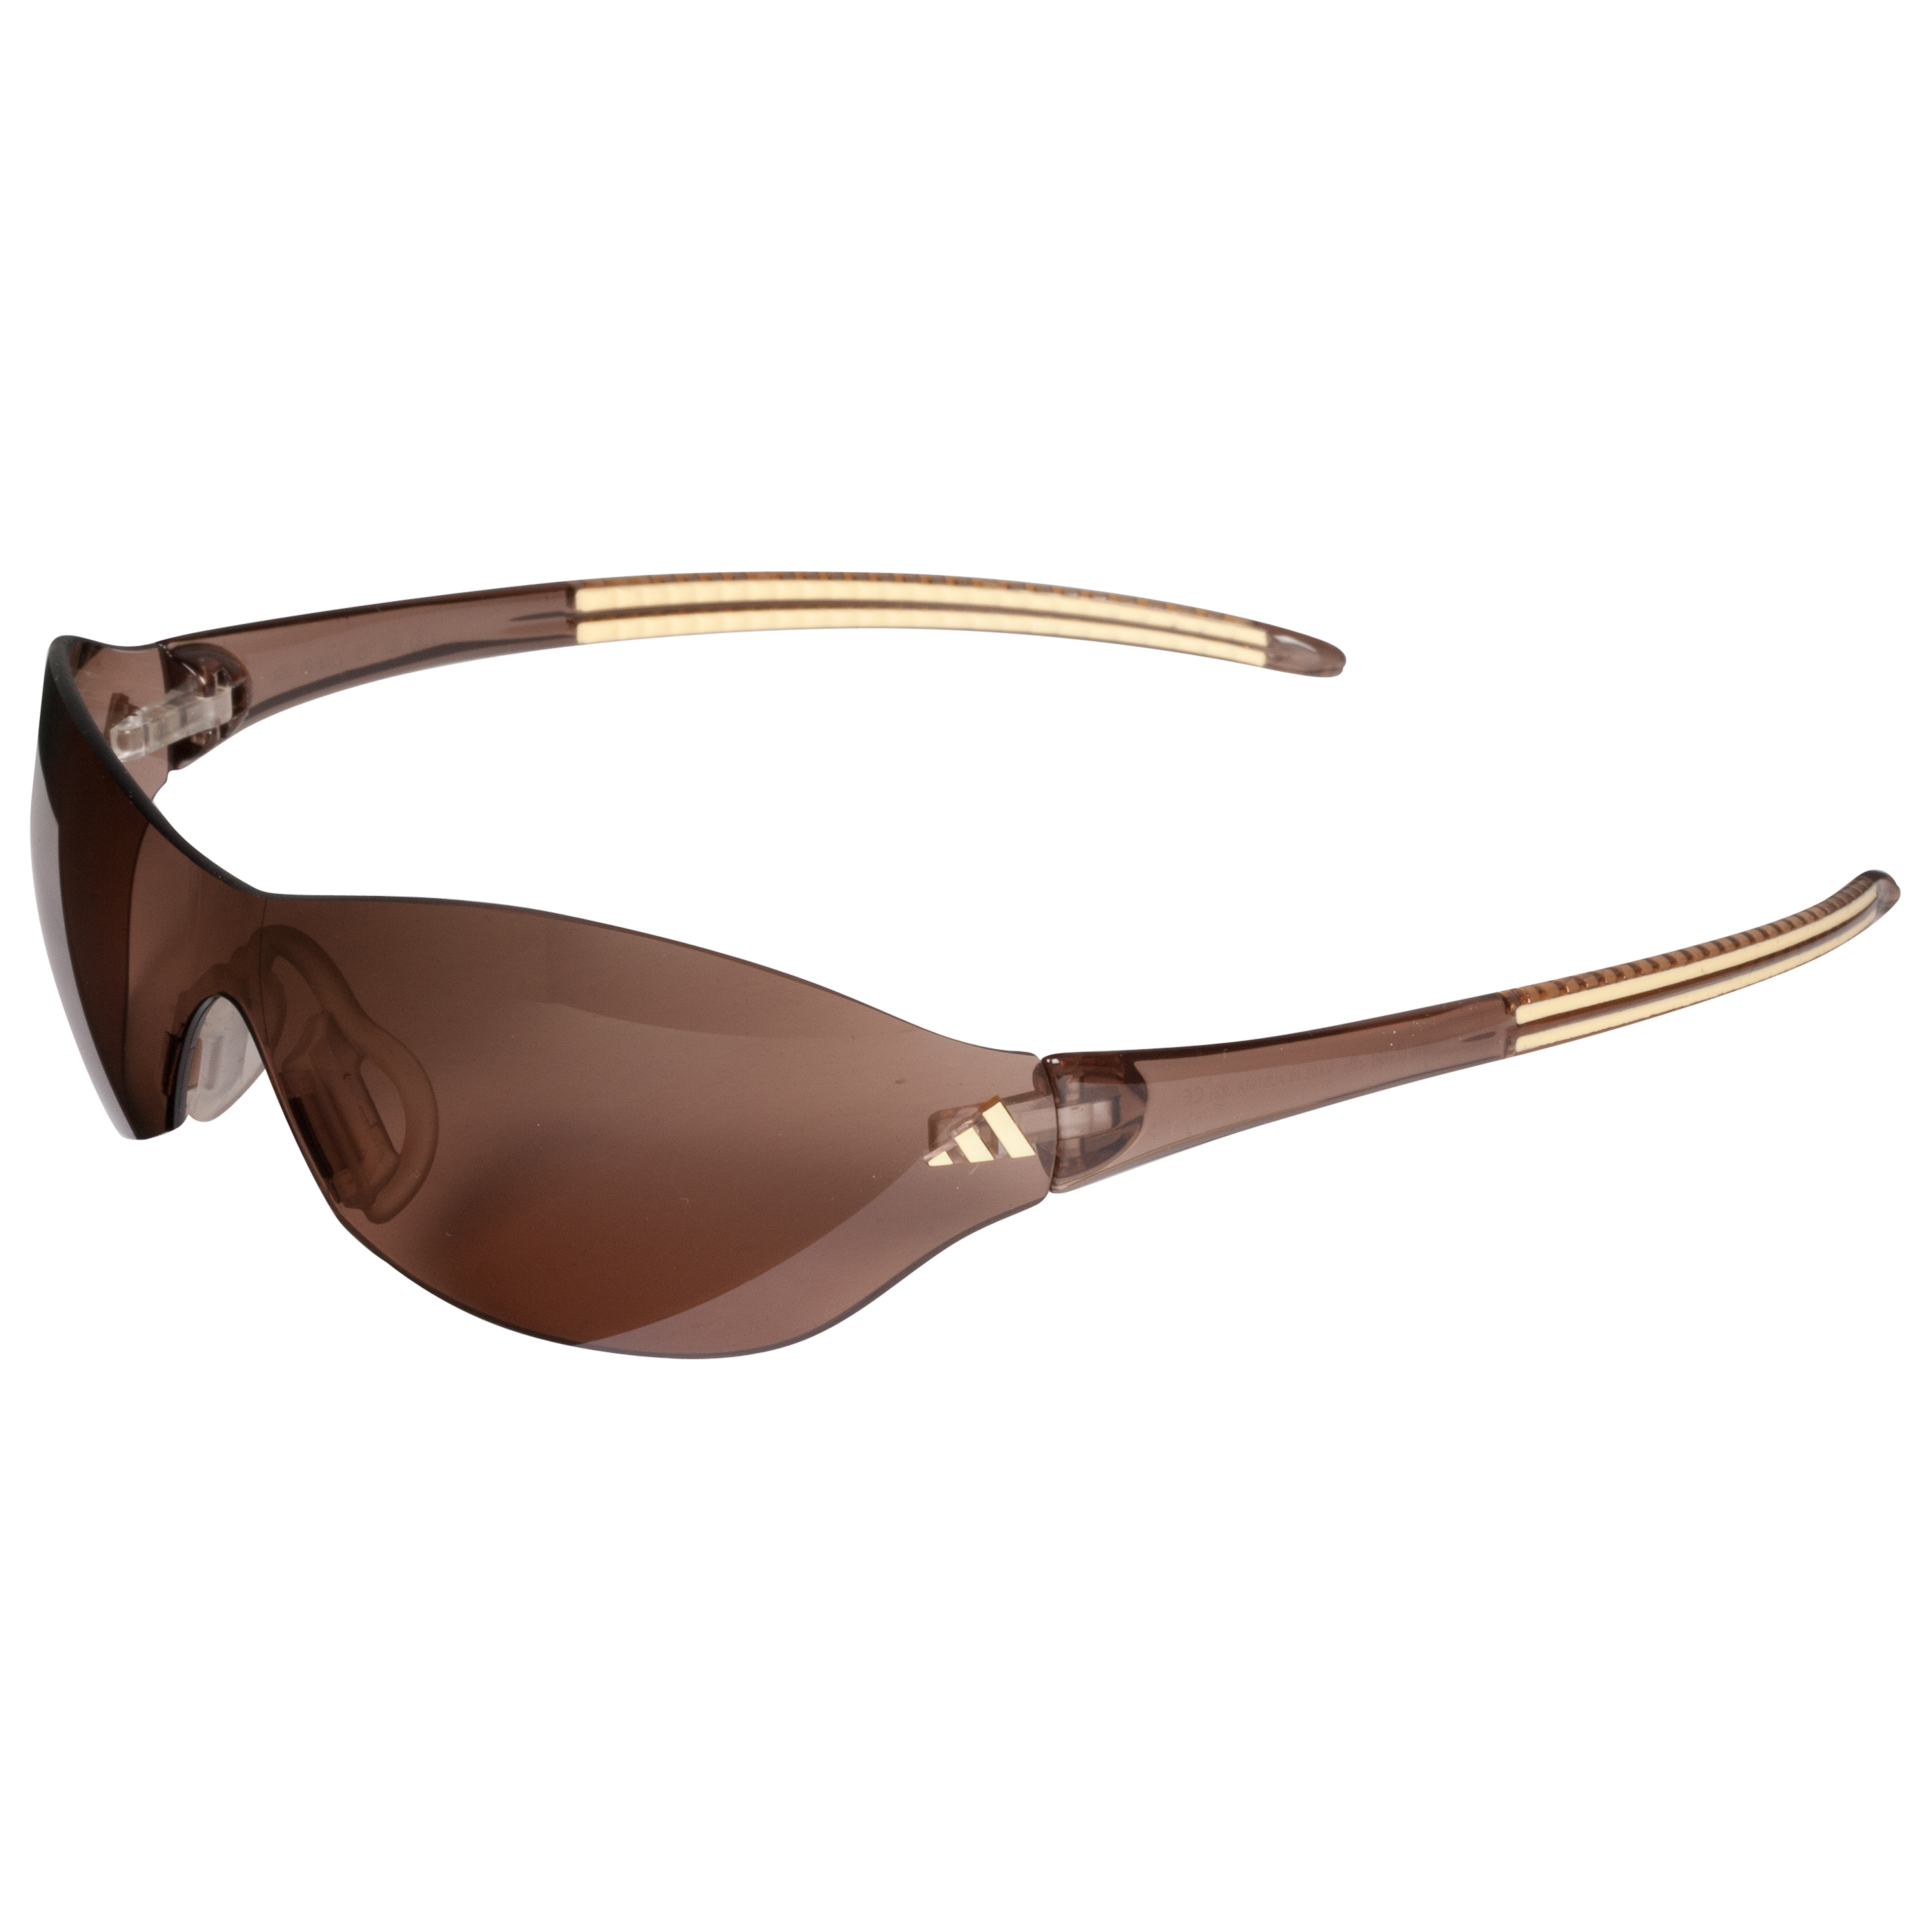 Adidas The Shield Sunglasses - Brown